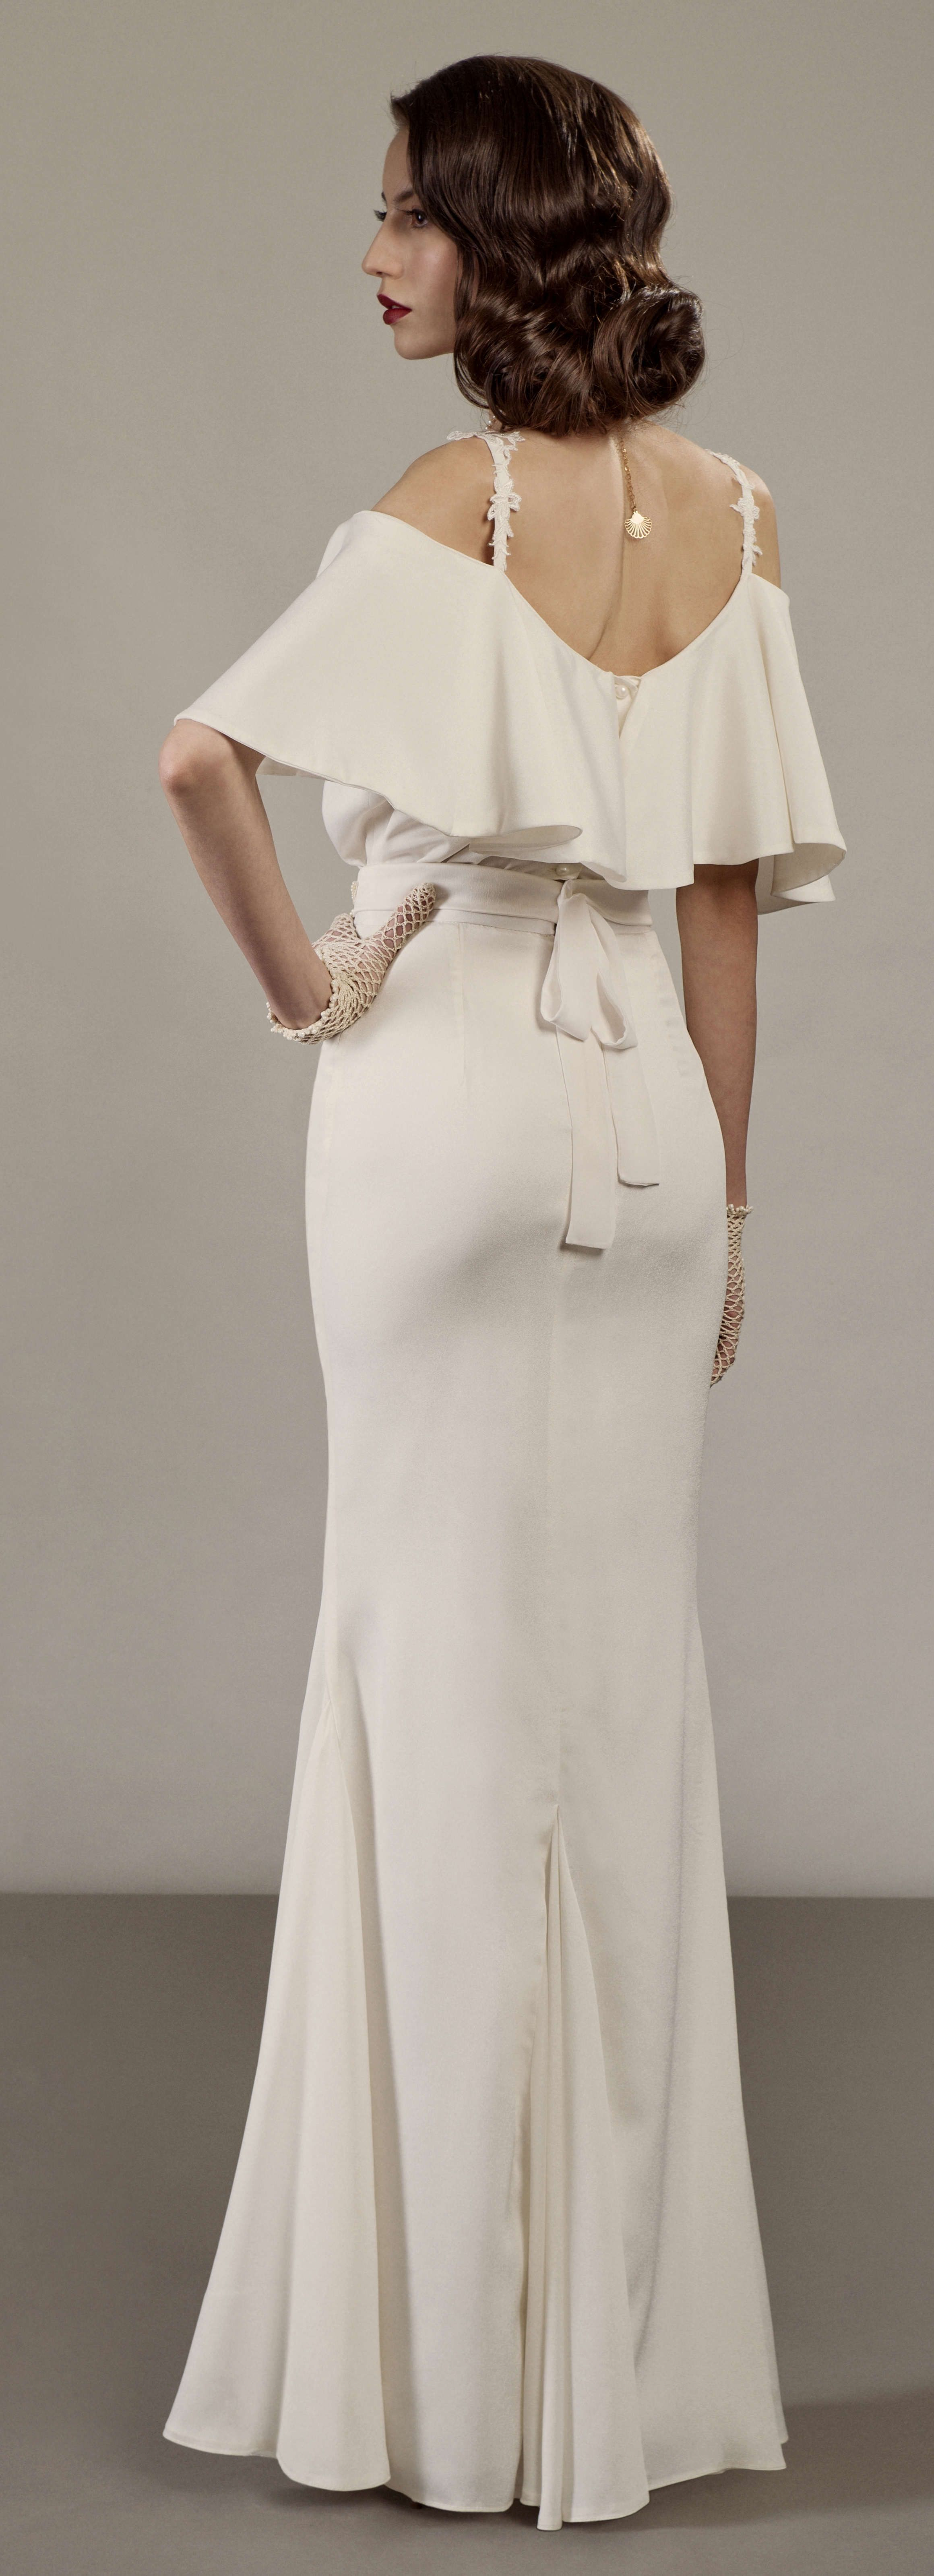 Old hollywood glam us inspired off the shoulder wedding dress my